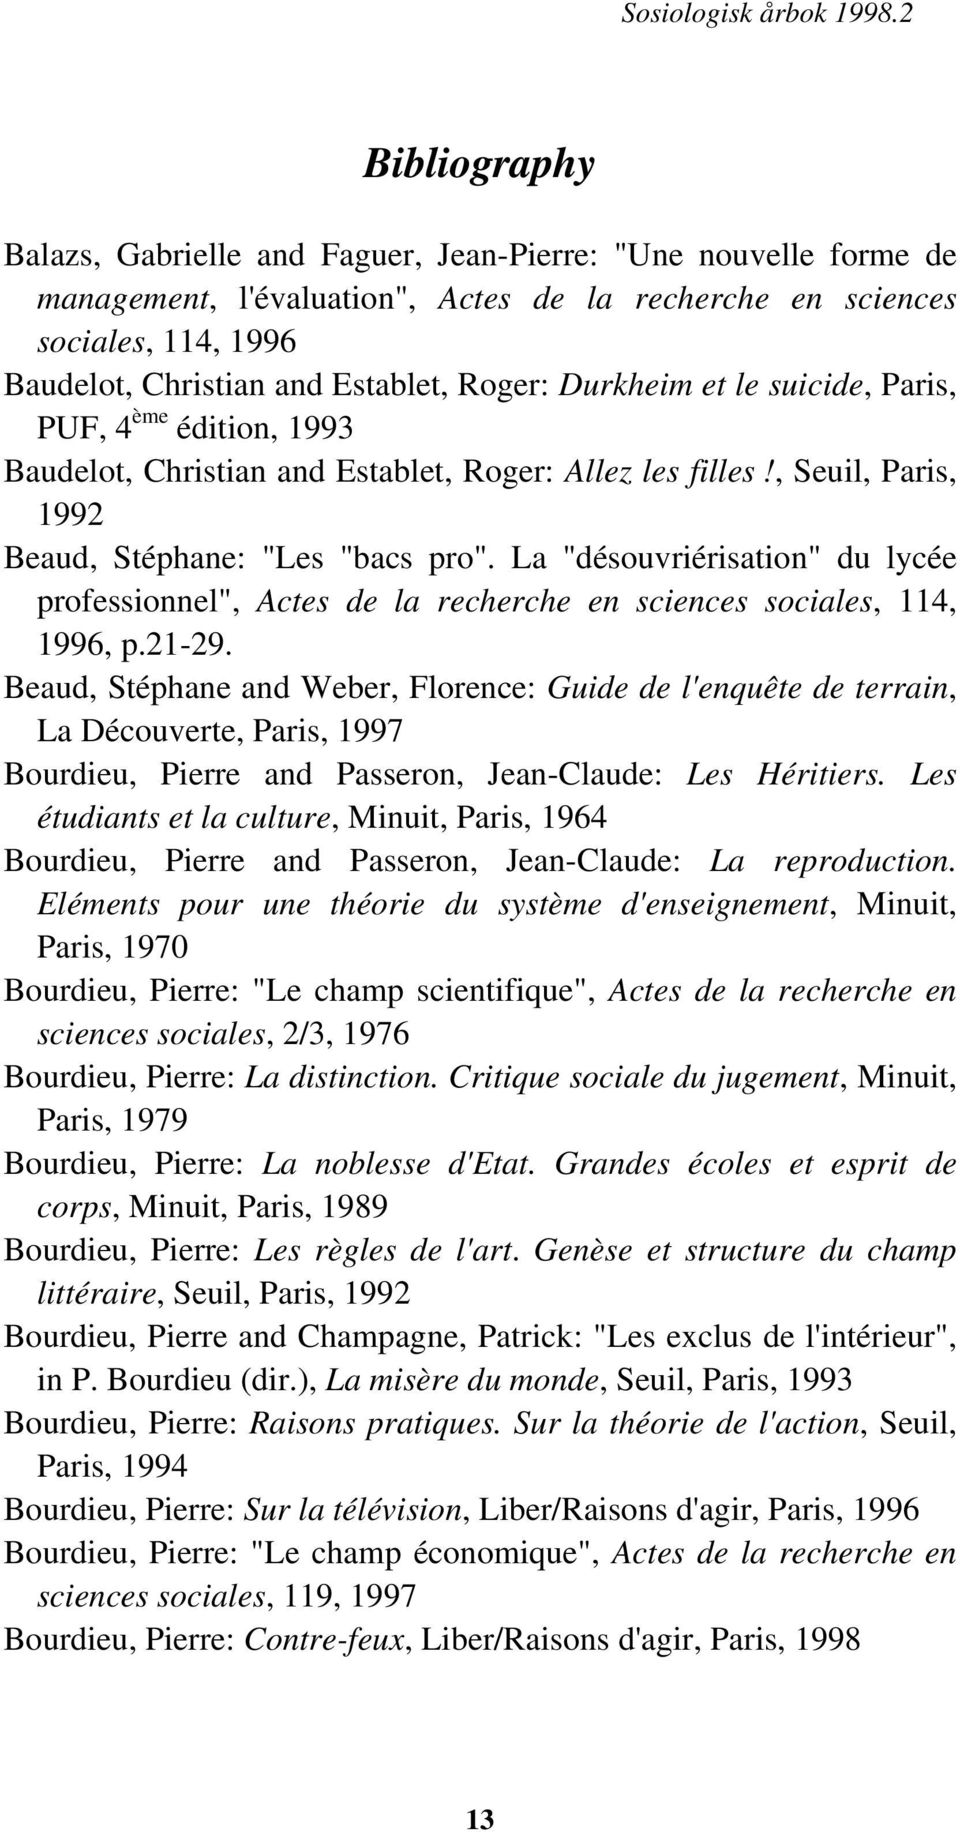 "Roger: Durkheim et le suicide, Paris, PUF, 4 ème édition, 1993 Baudelot, Christian and Establet, Roger: Allez les filles!, Seuil, Paris, 1992 Beaud, Stéphane: ""Les ""bacs pro""."